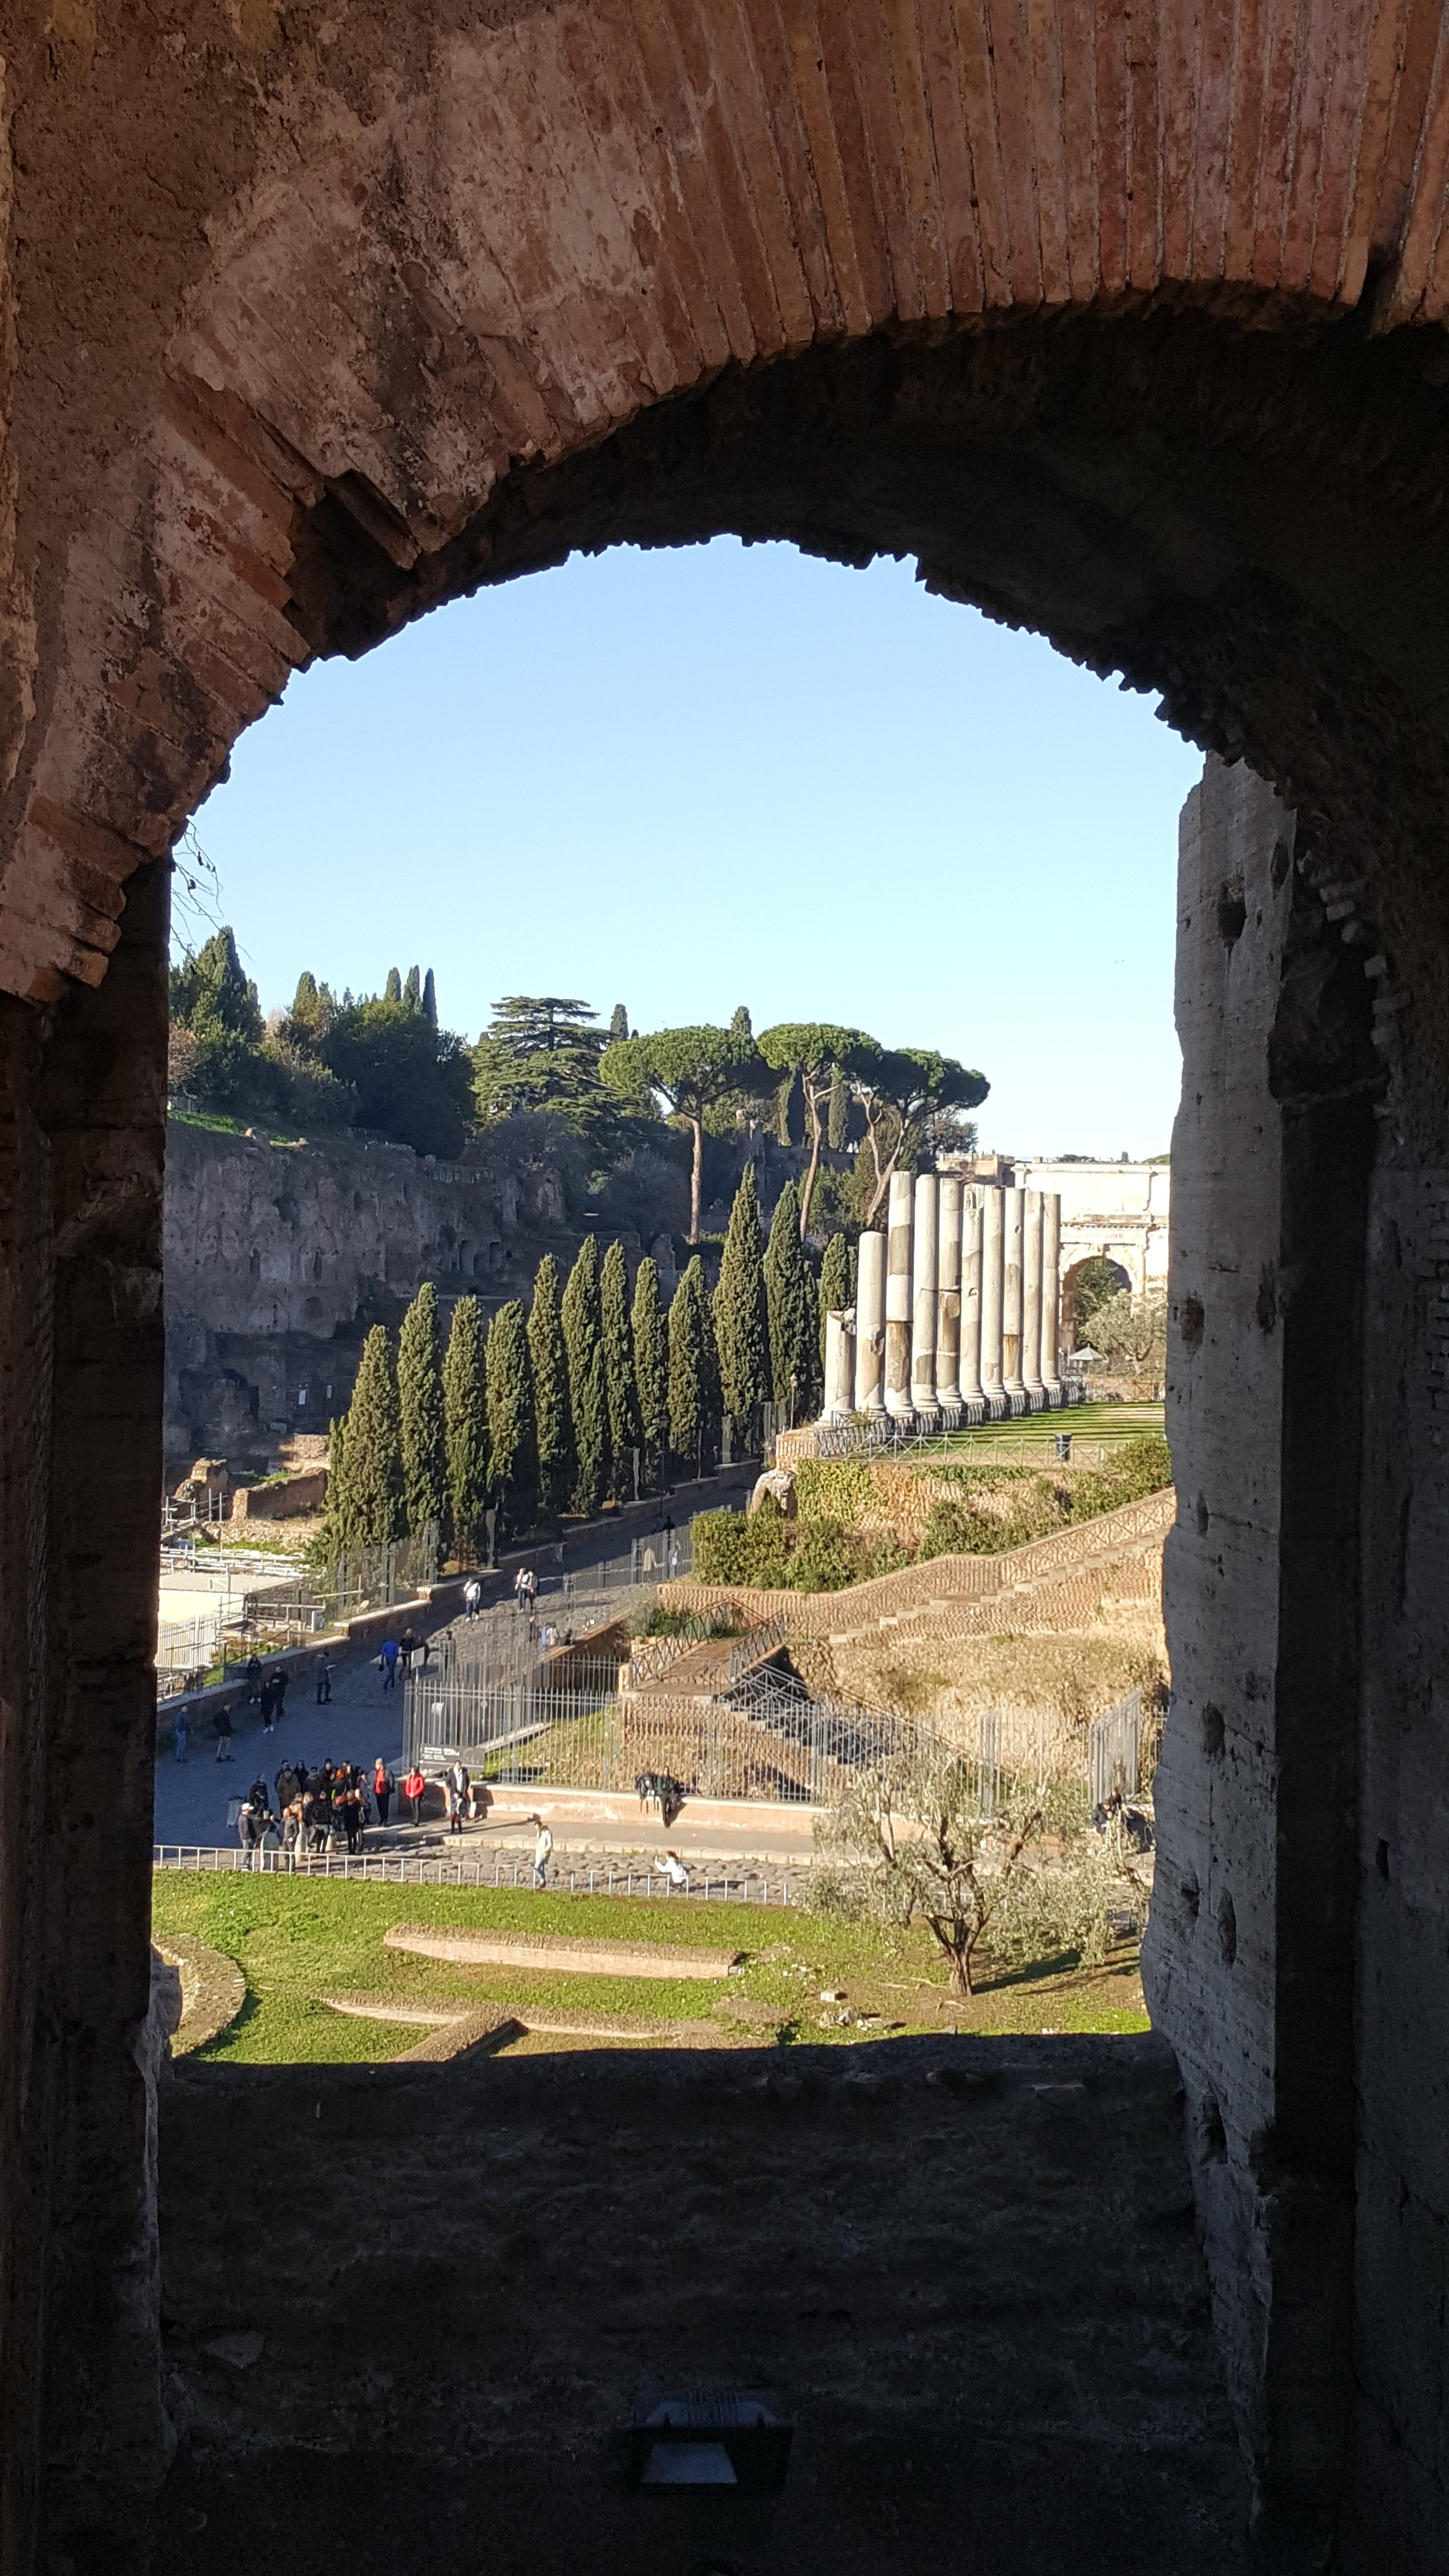 View from the Colosseo